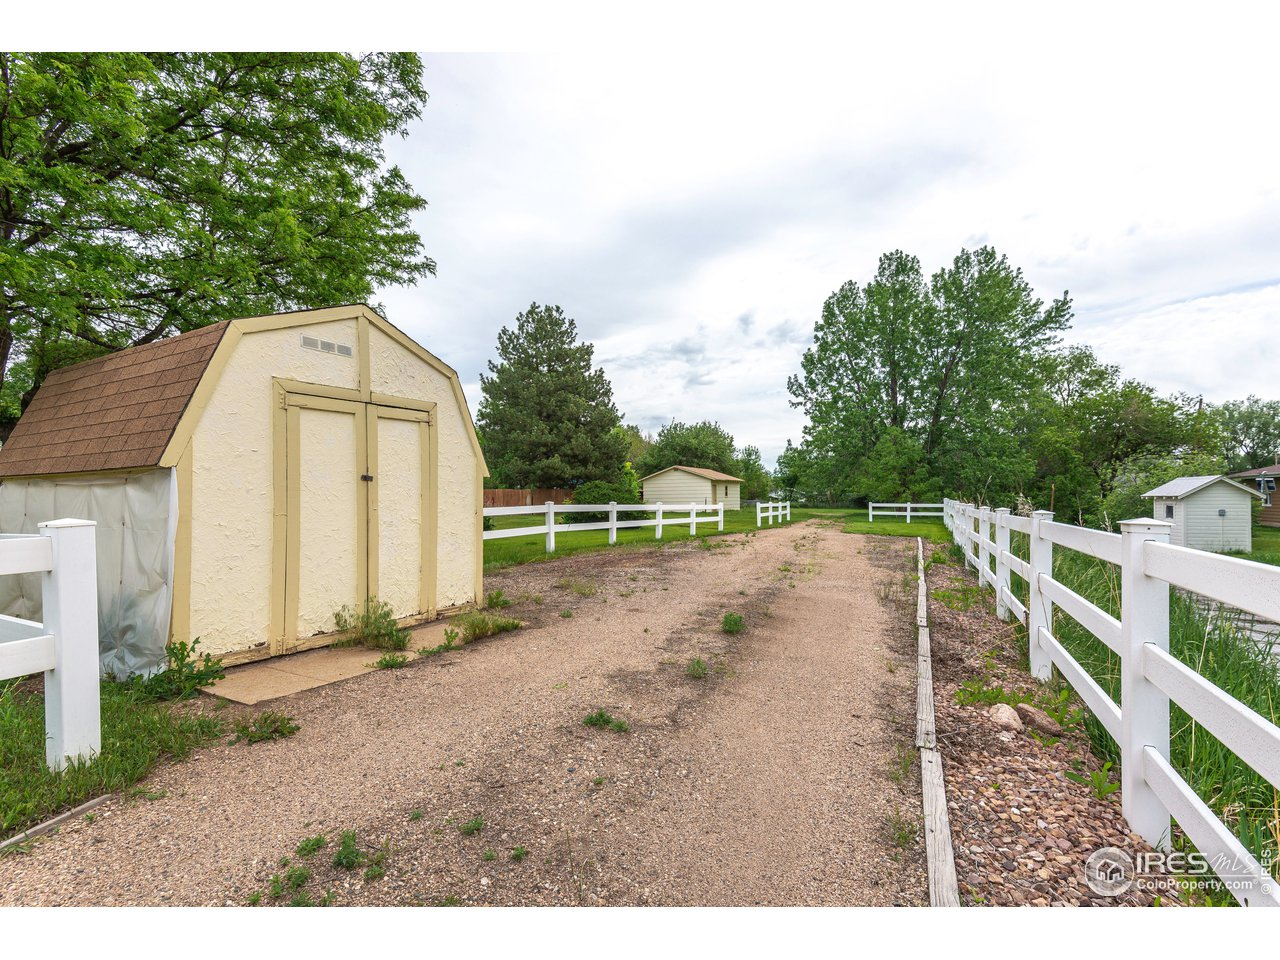 Storage shed included